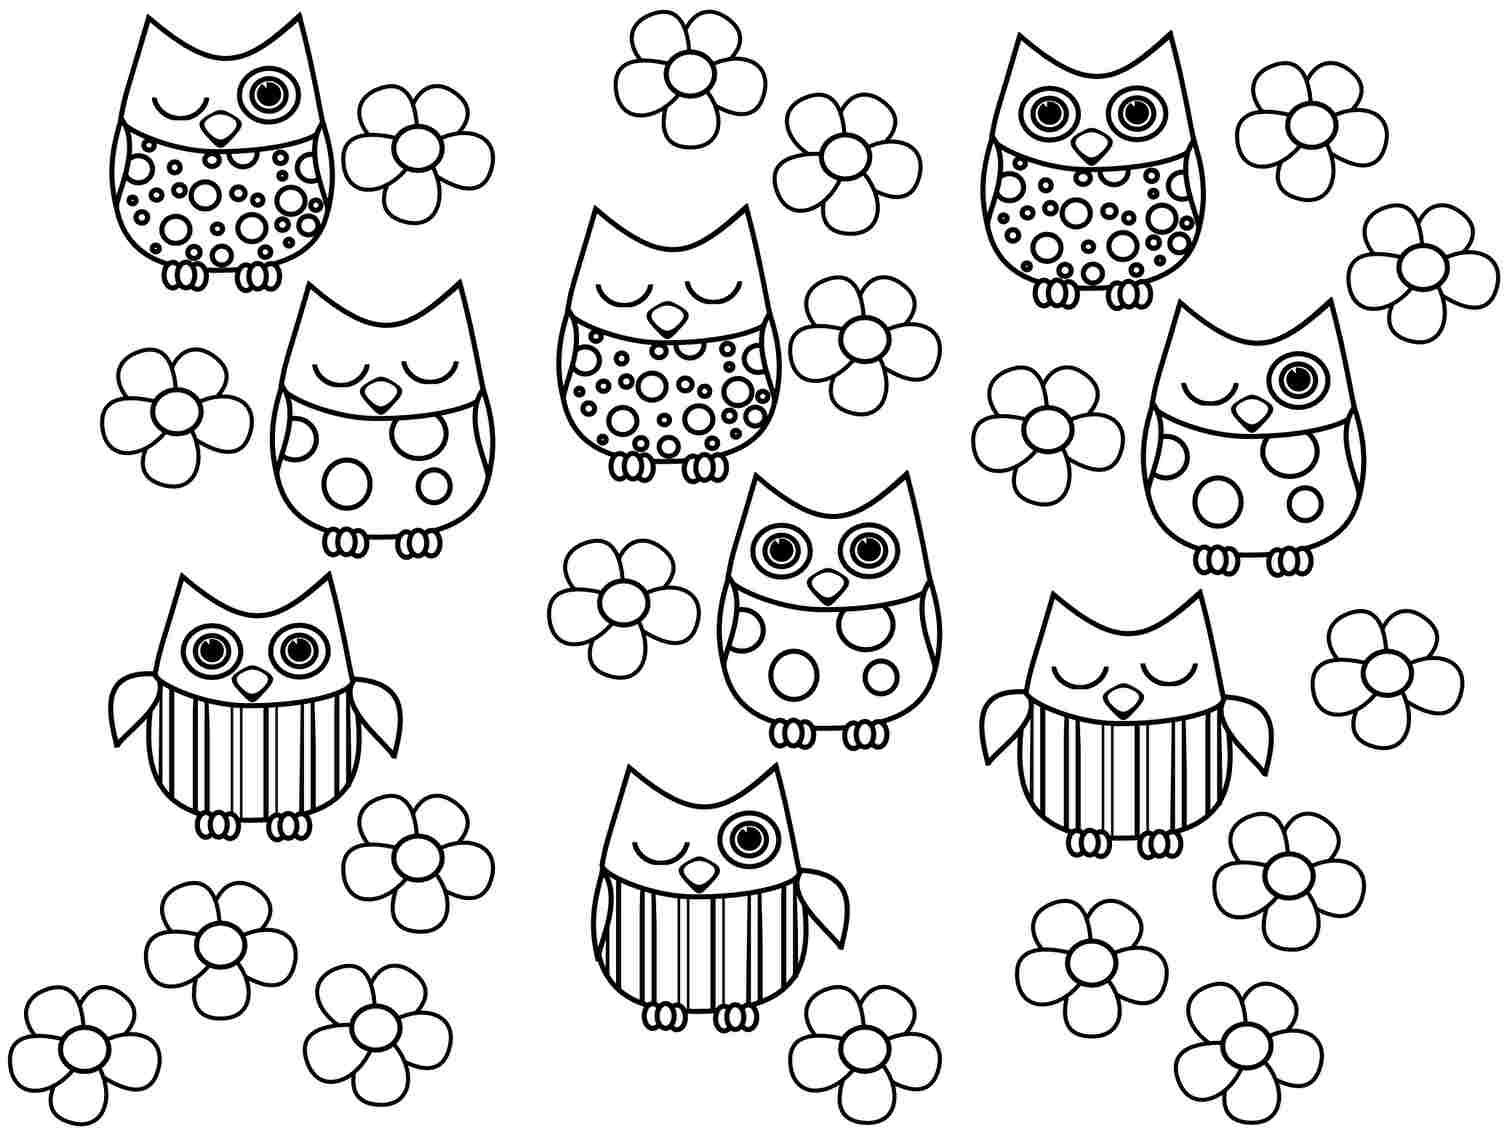 Print Full Size Image Free Colouring Sheets Animal Owl For Preschool